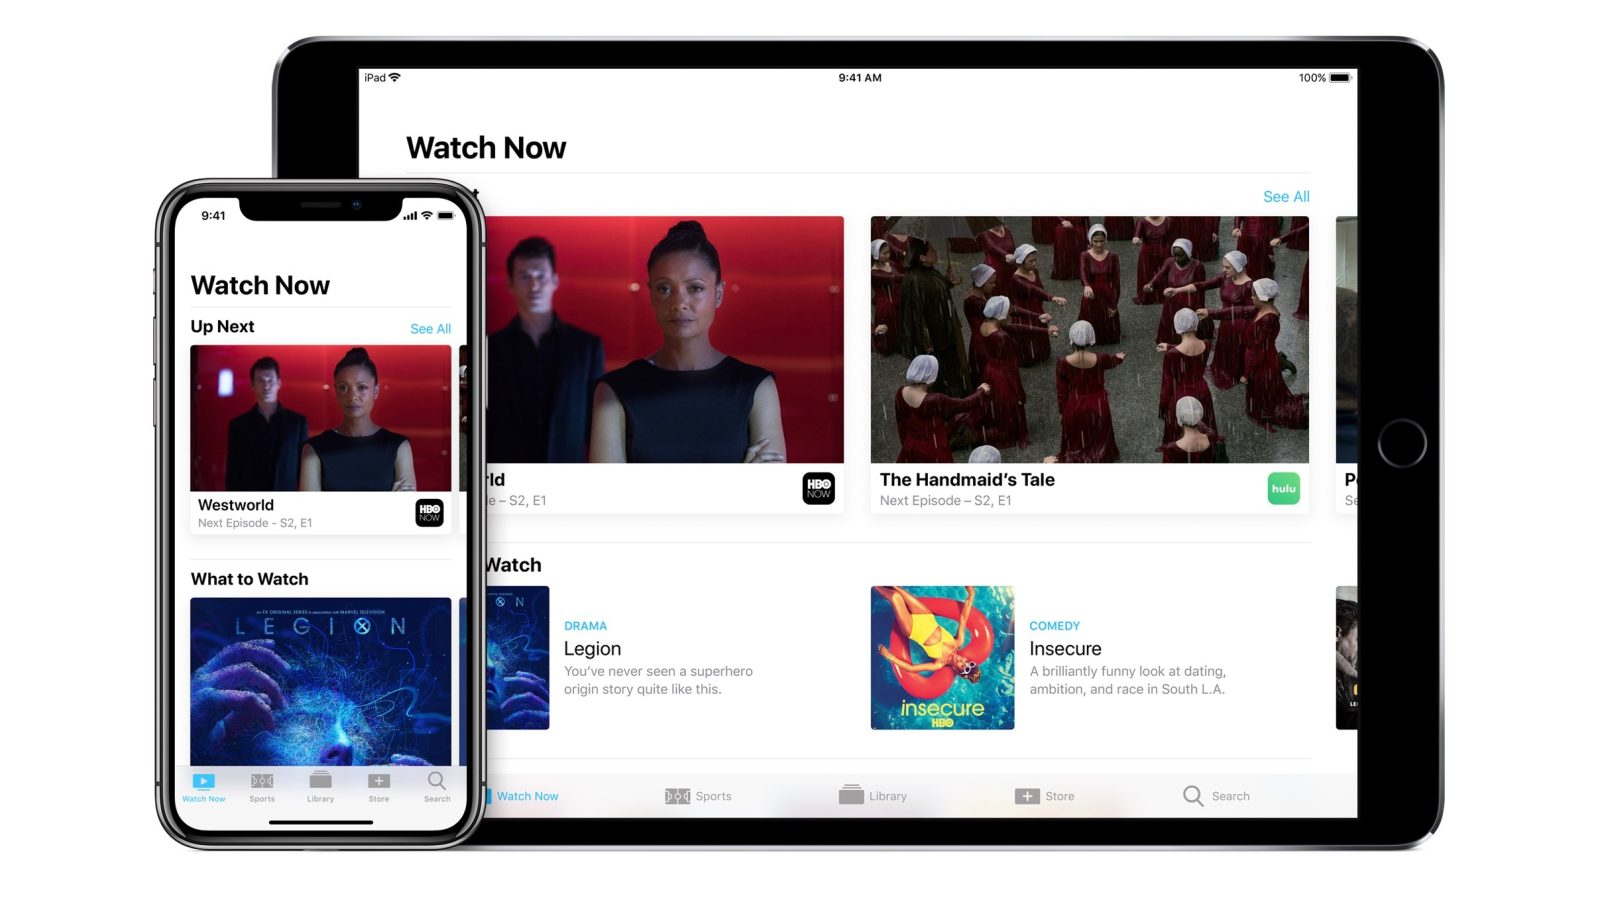 Apple's original content video service reportedly launching in April